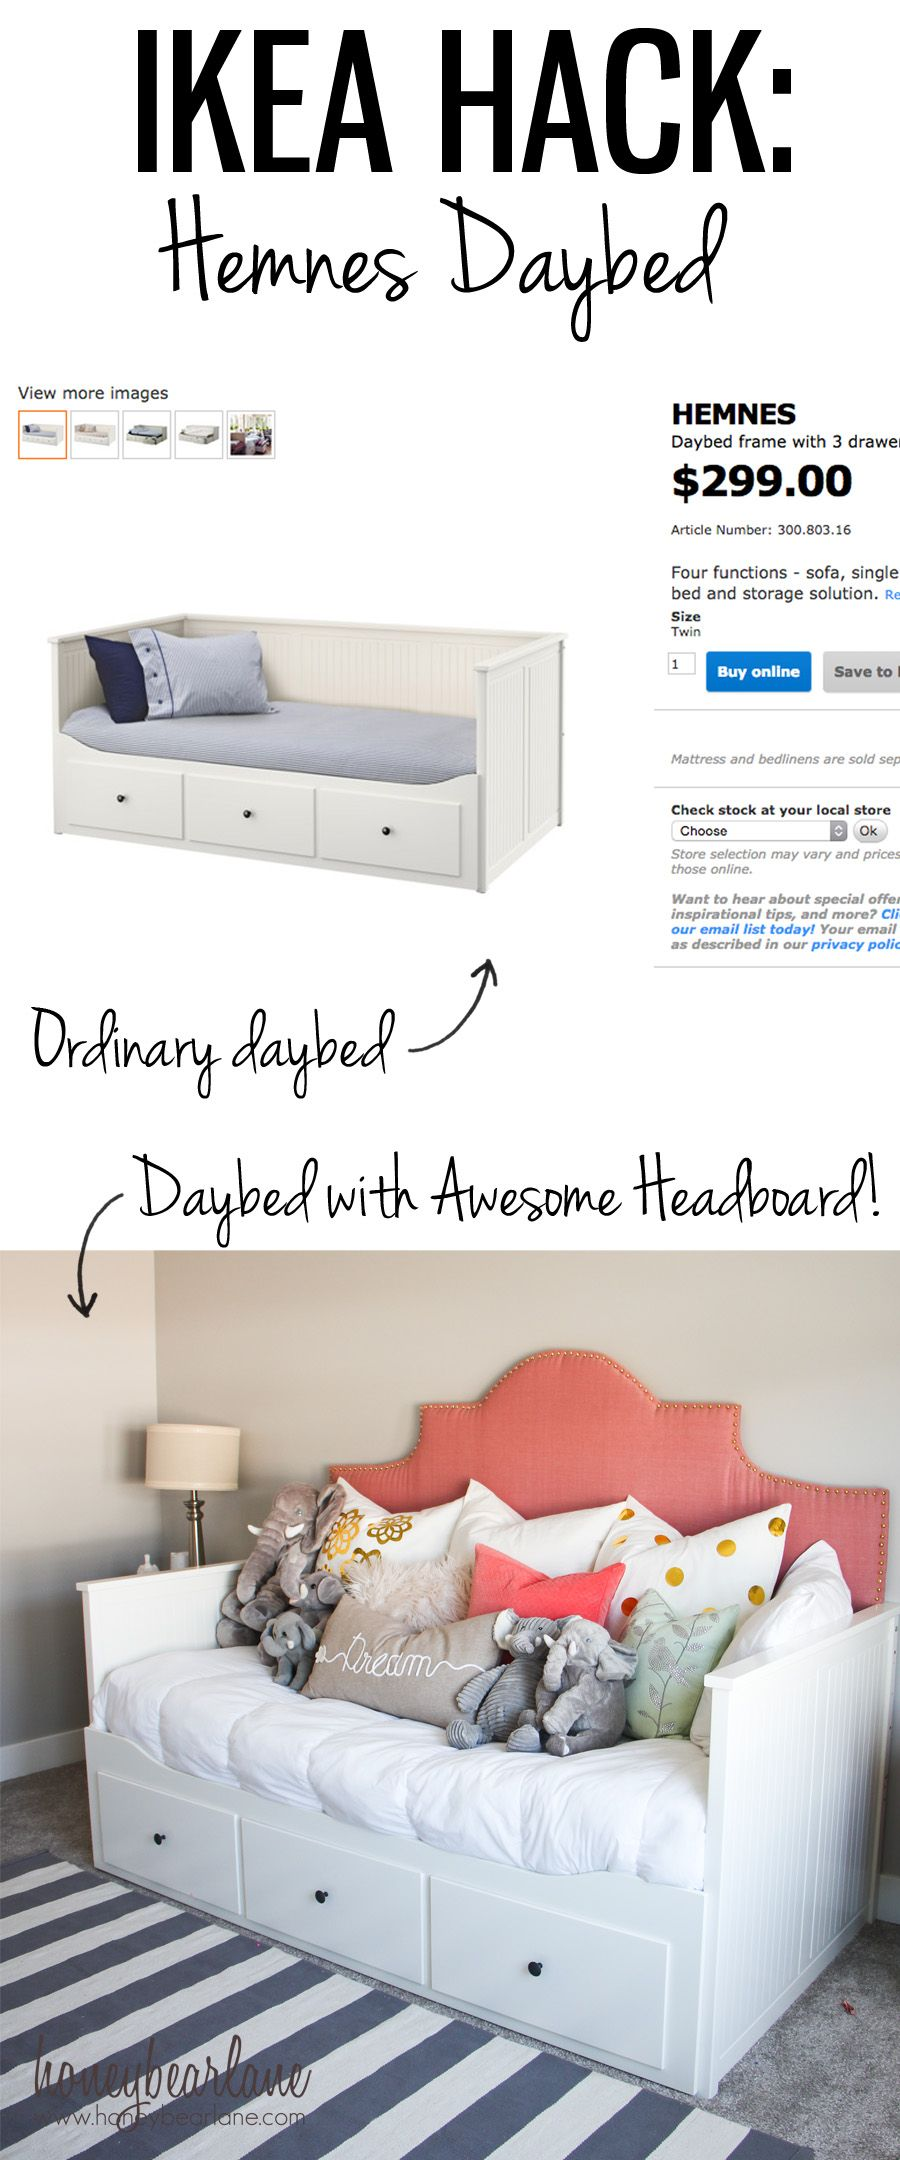 Hemnes Daybed IKEA Hack HEMNES, Ikea hacks and Daybeds